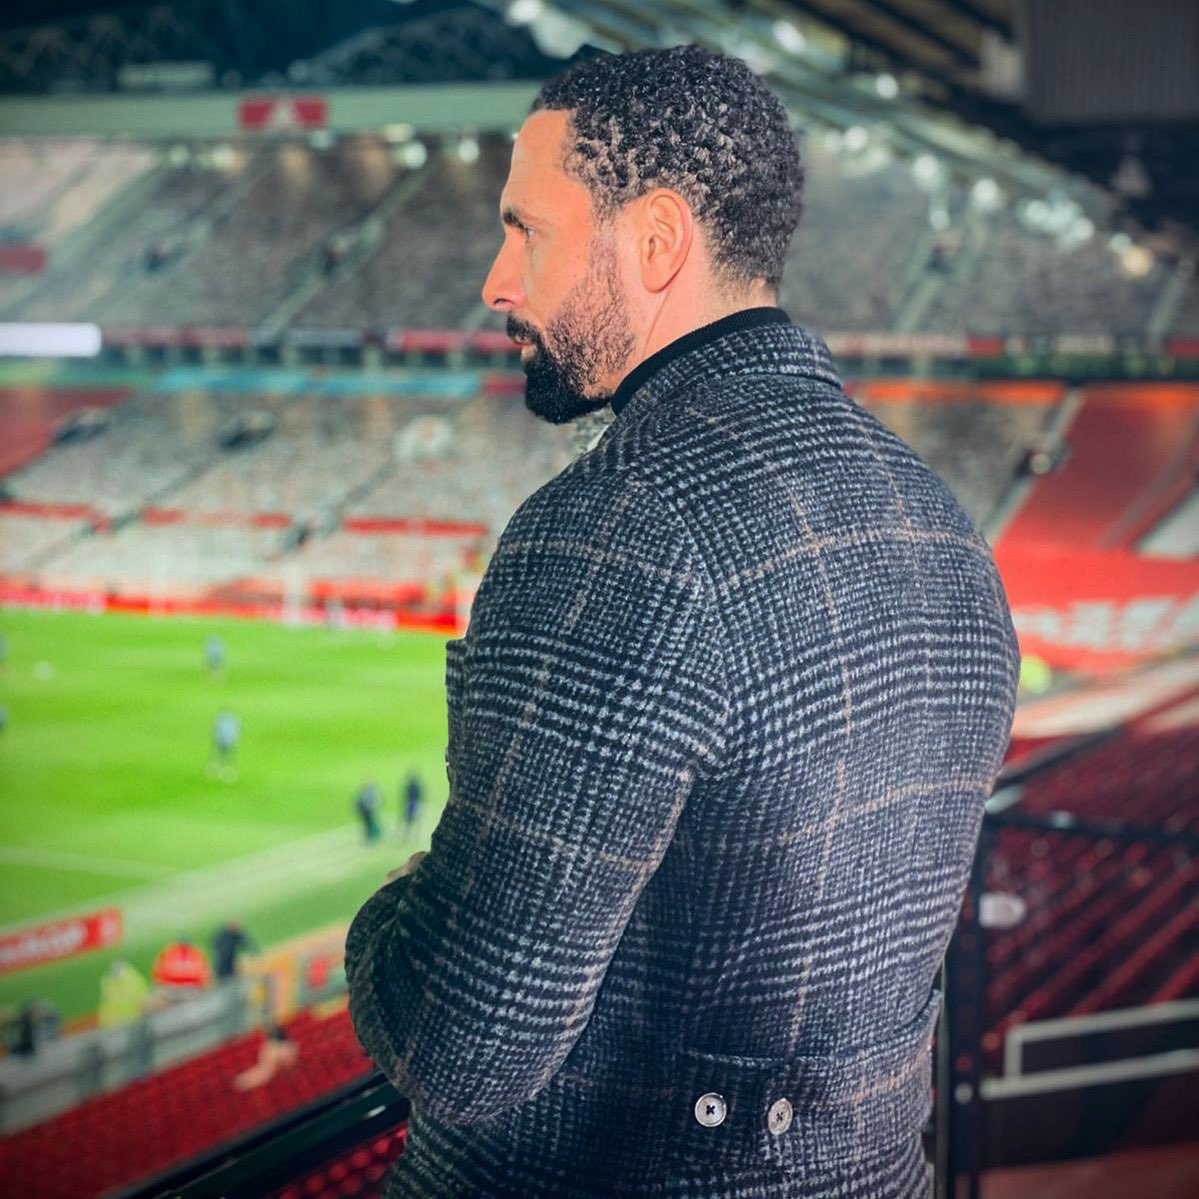 Blessed to be breathing in the Old Trafford air like the old days!  #mufc 📸 @jakehumphrey